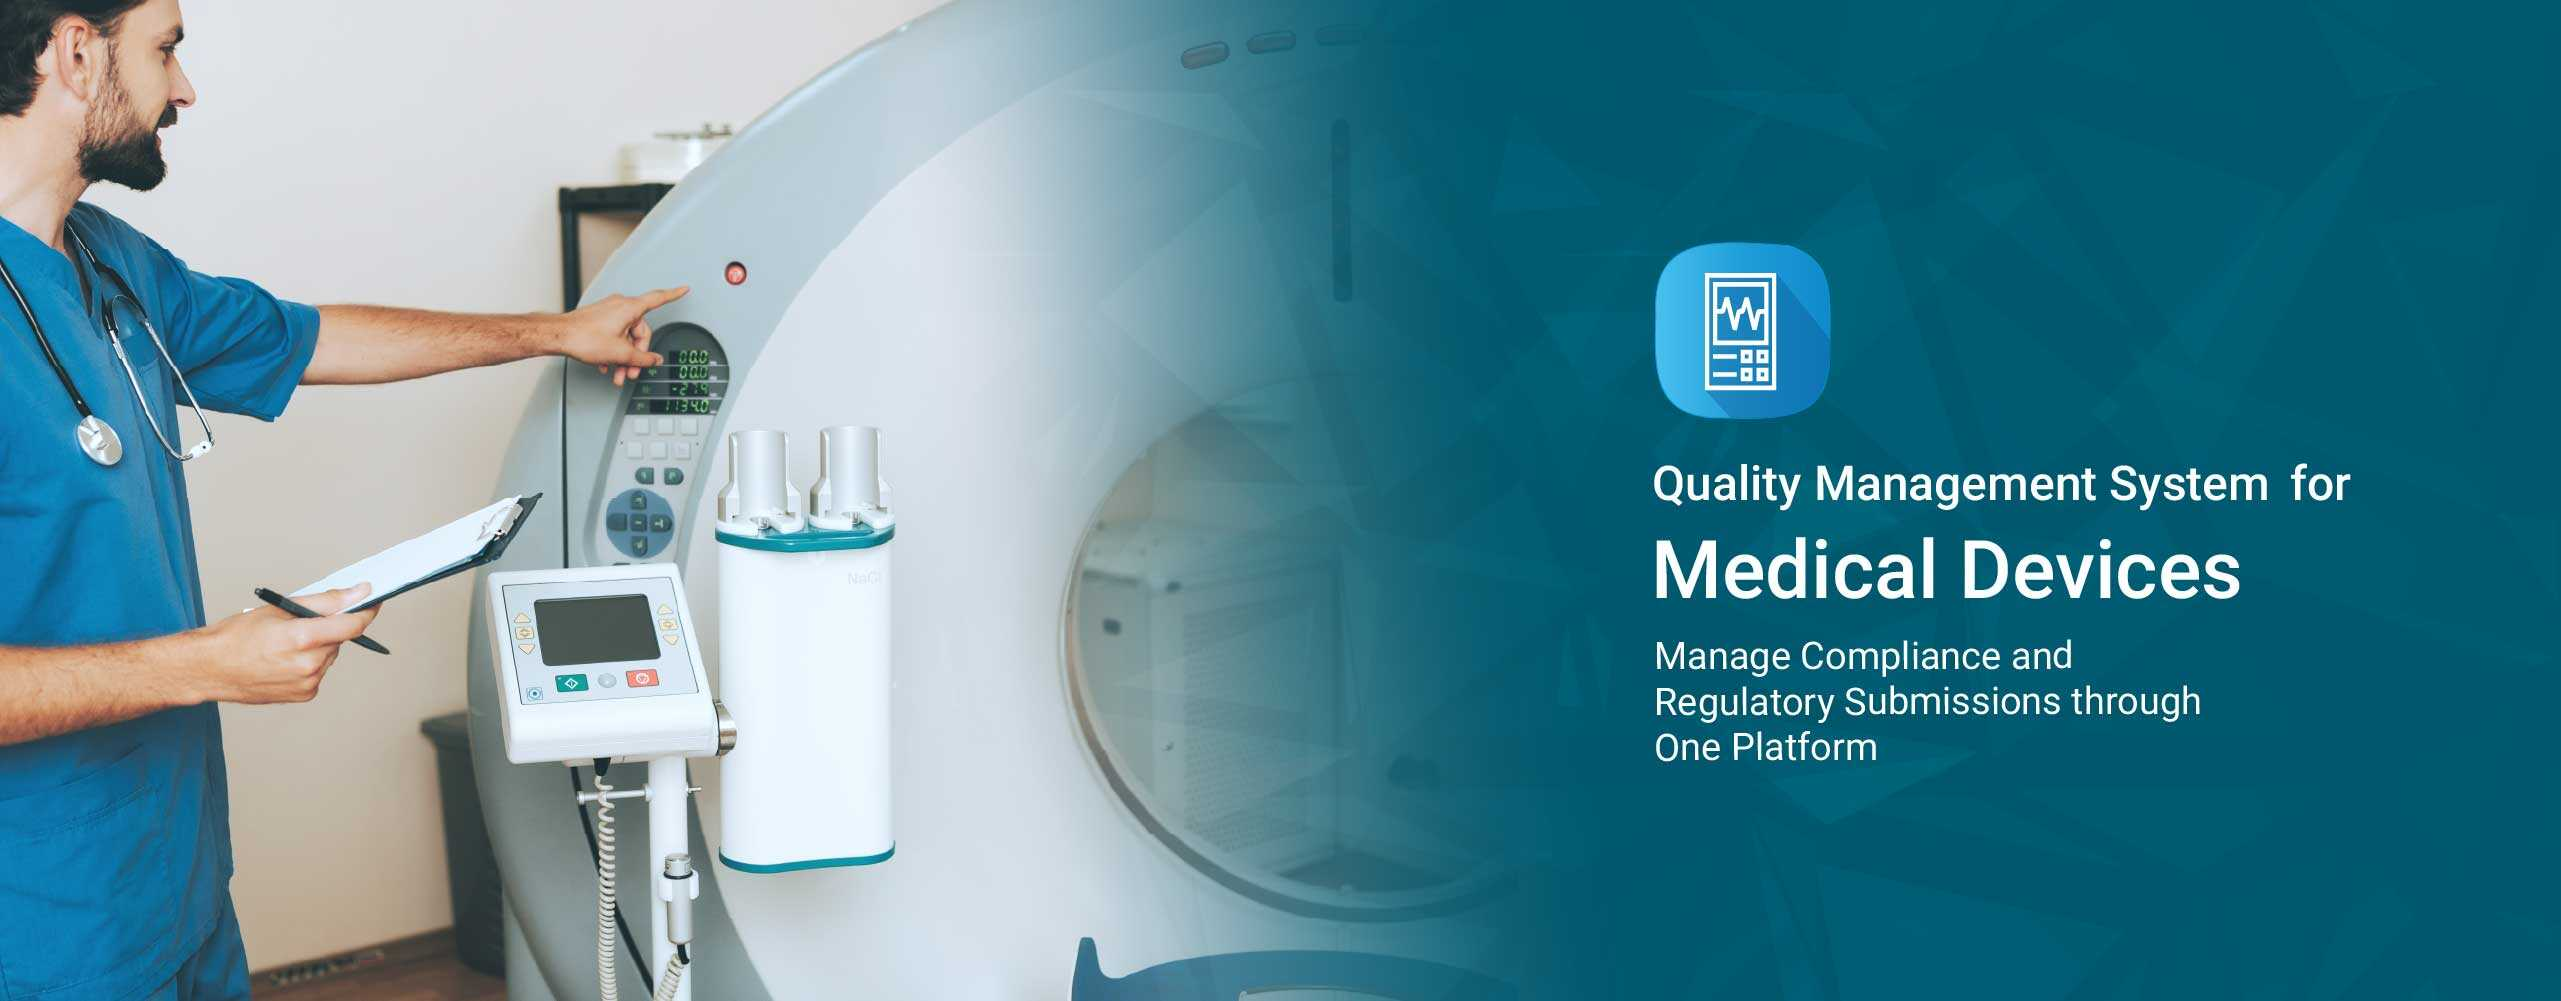 Quality Management System for Medical Devices